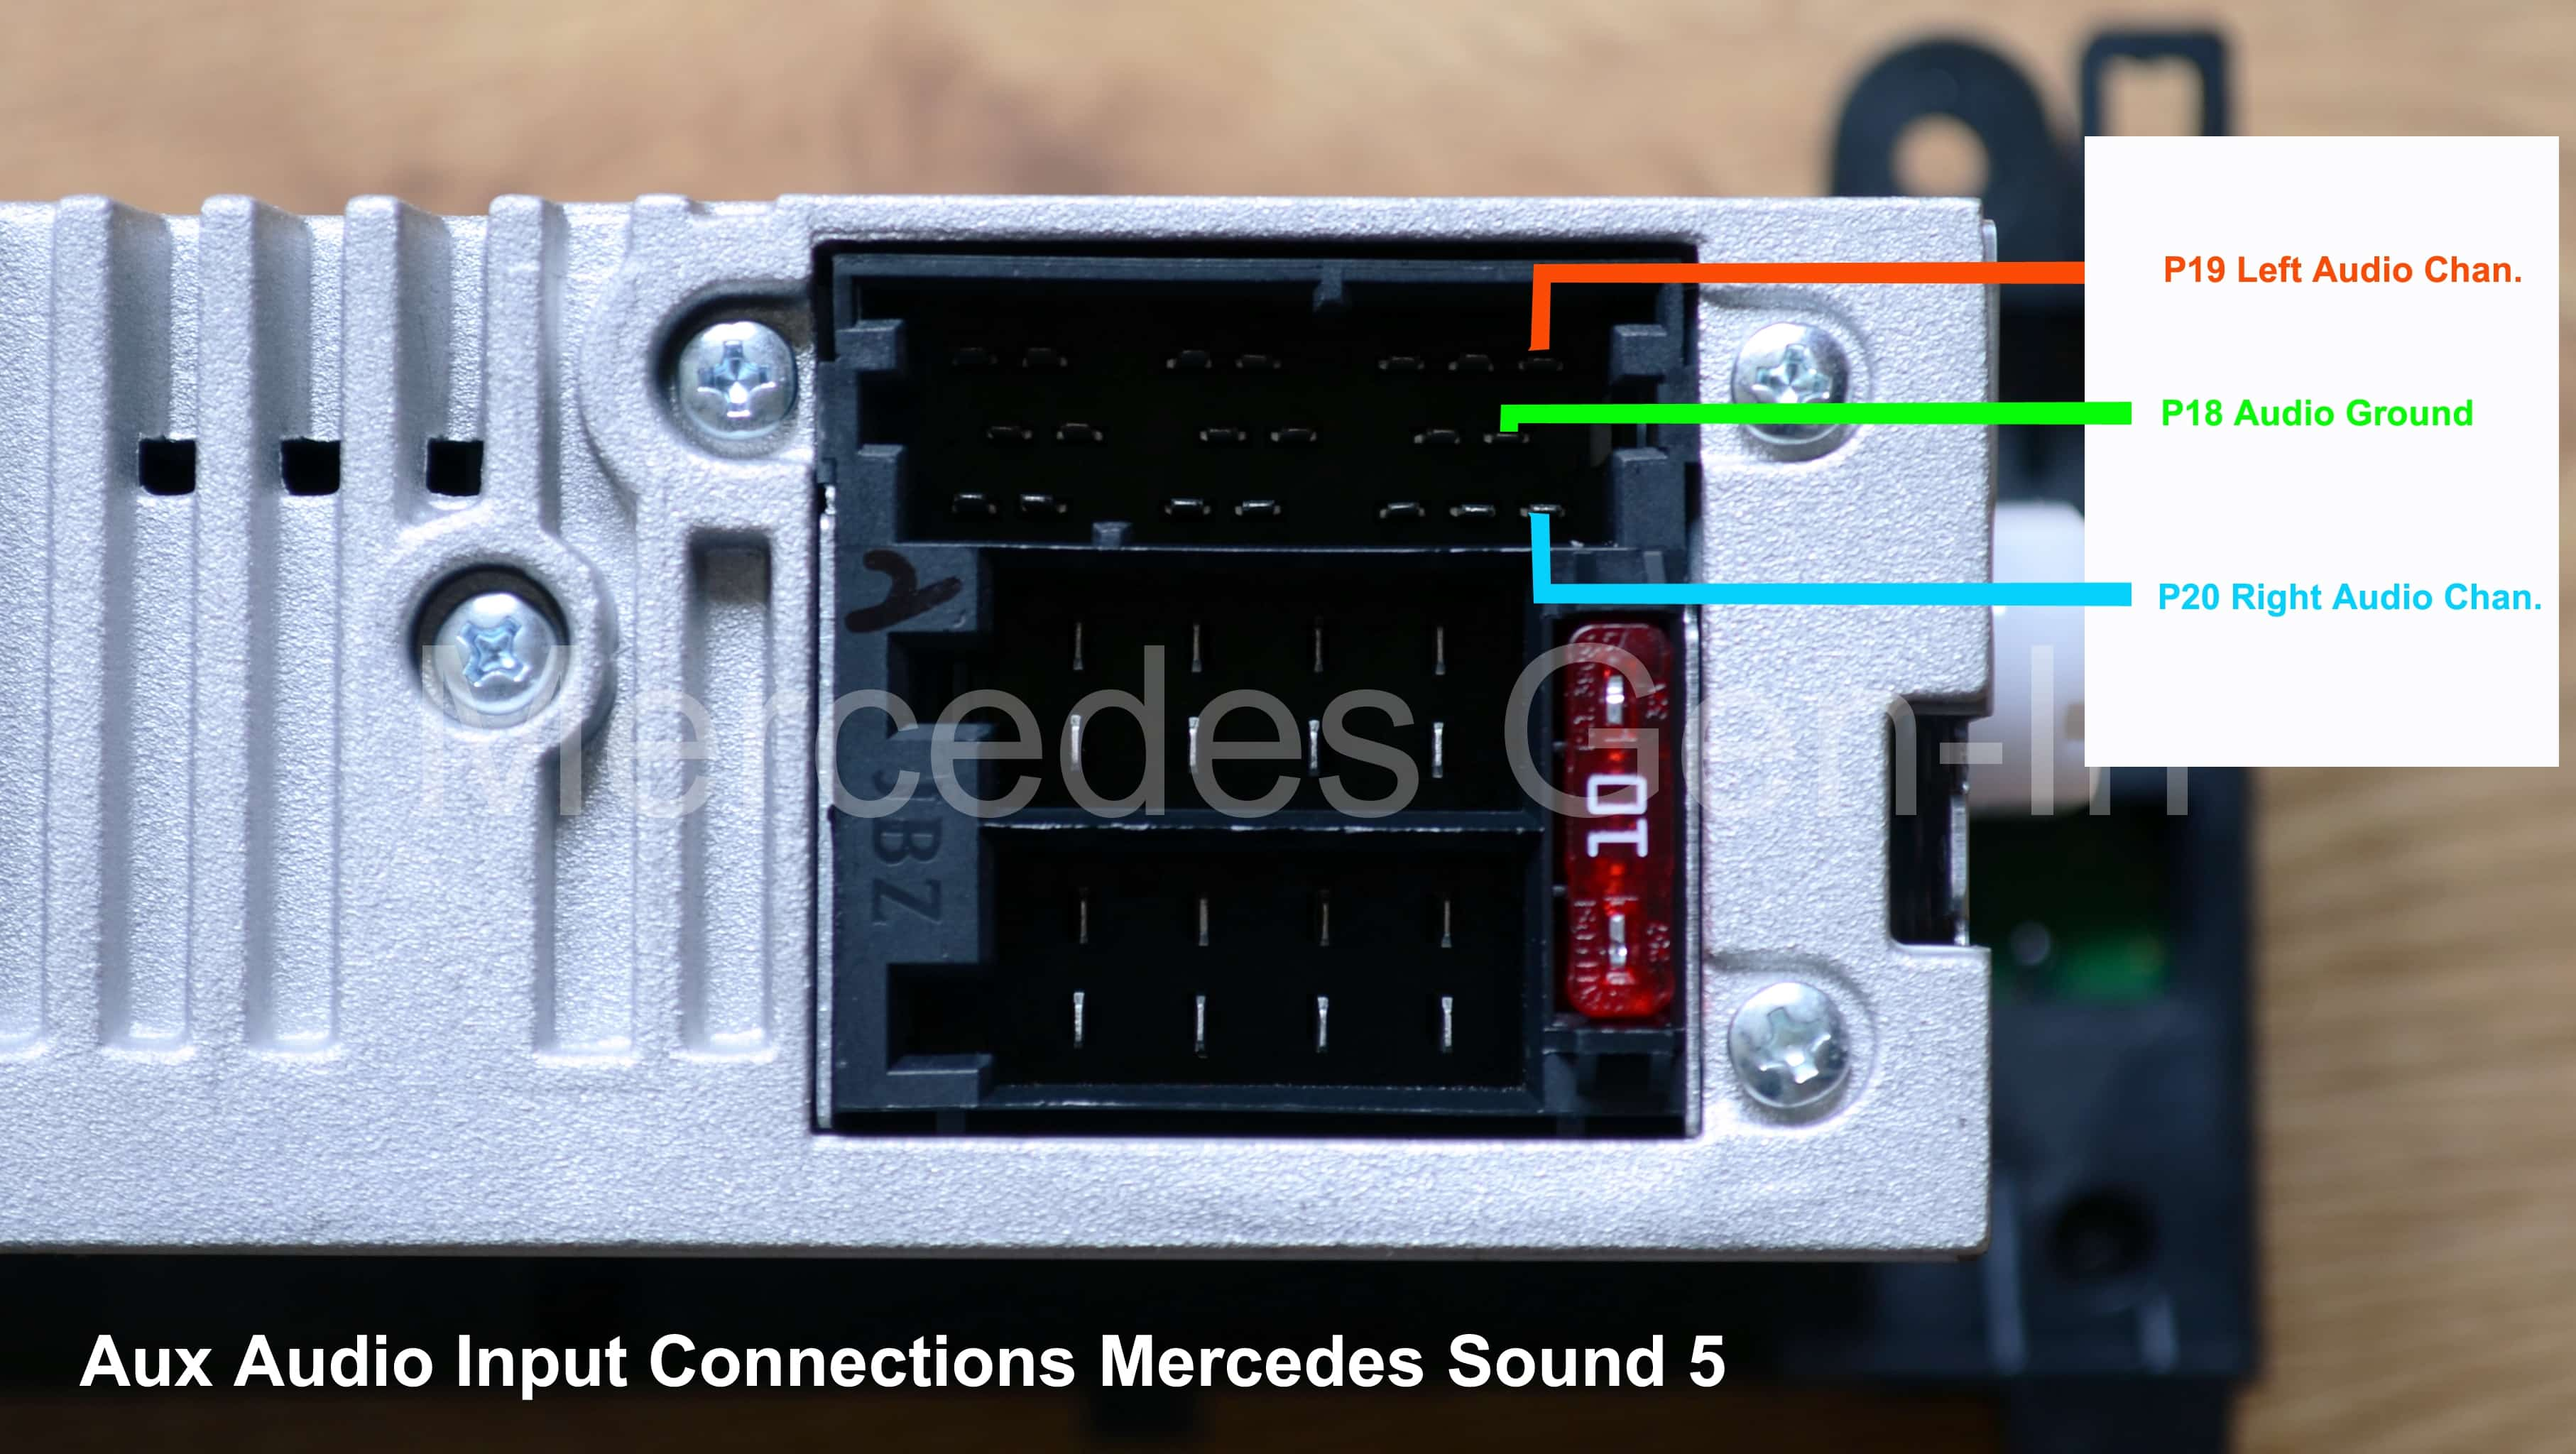 Mercedes Sound 5 Audio Connection Mercedes Gen In